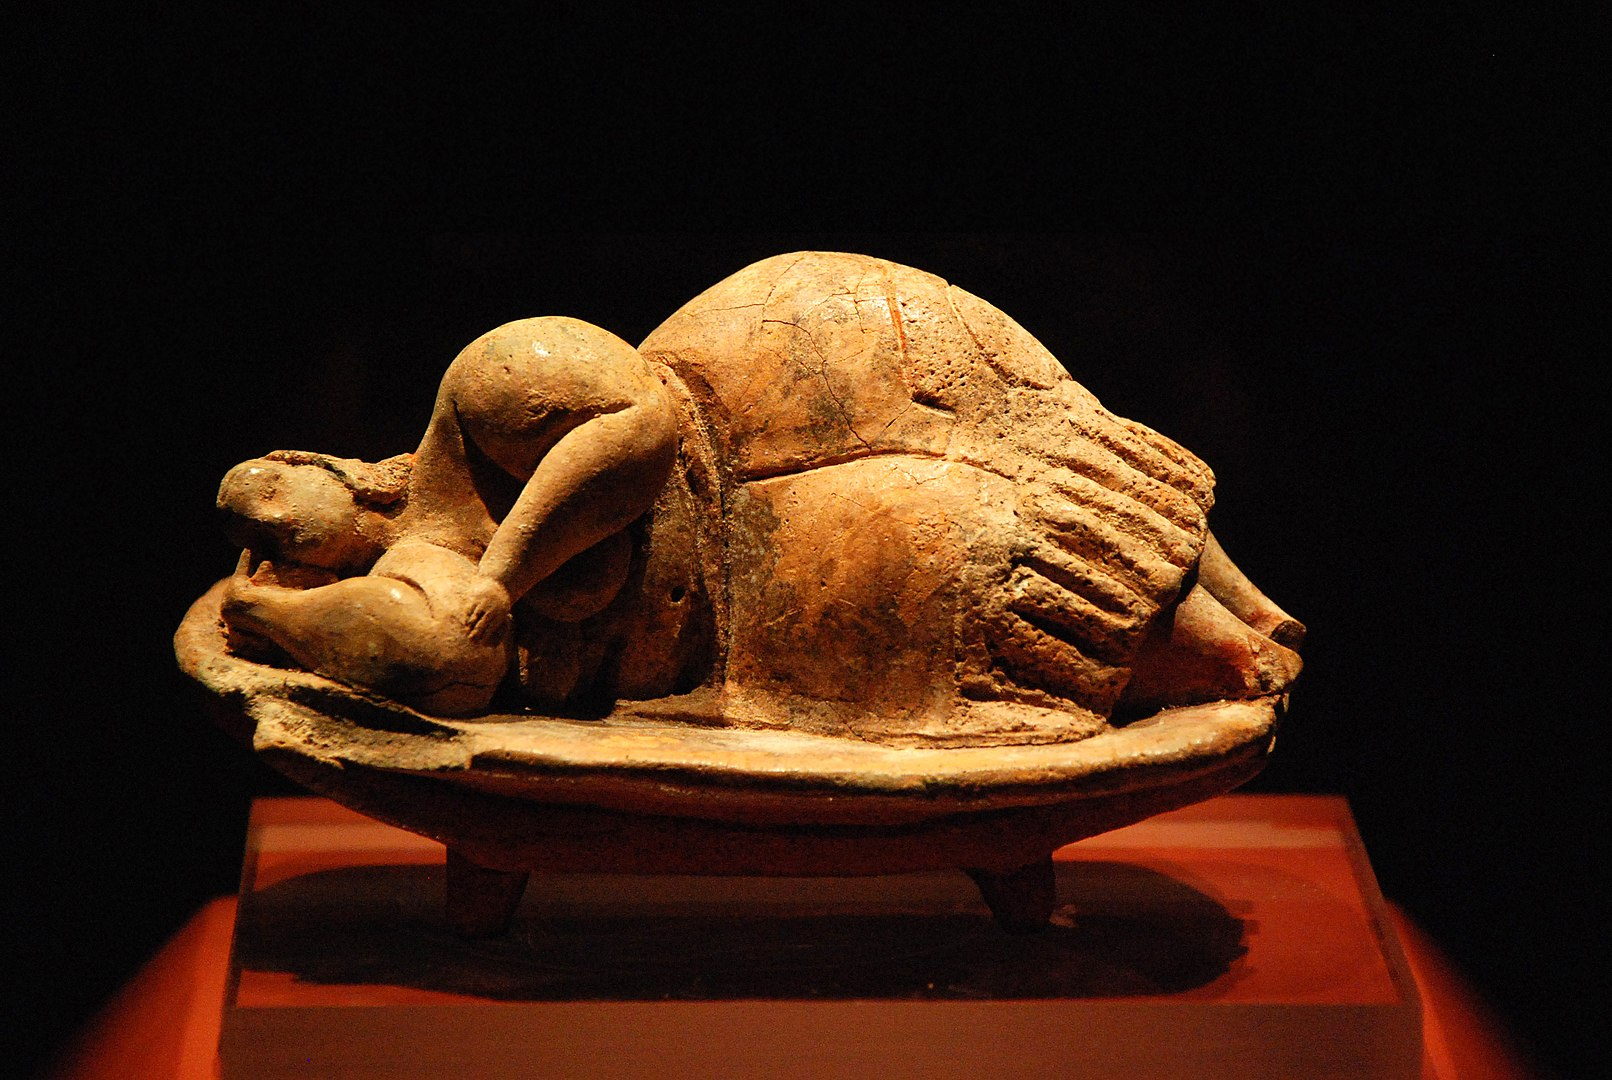 Best Things To Do in Malta | The Sleeping Lady of Ħal Saflieni, National Museum of Archaeology, Valletta